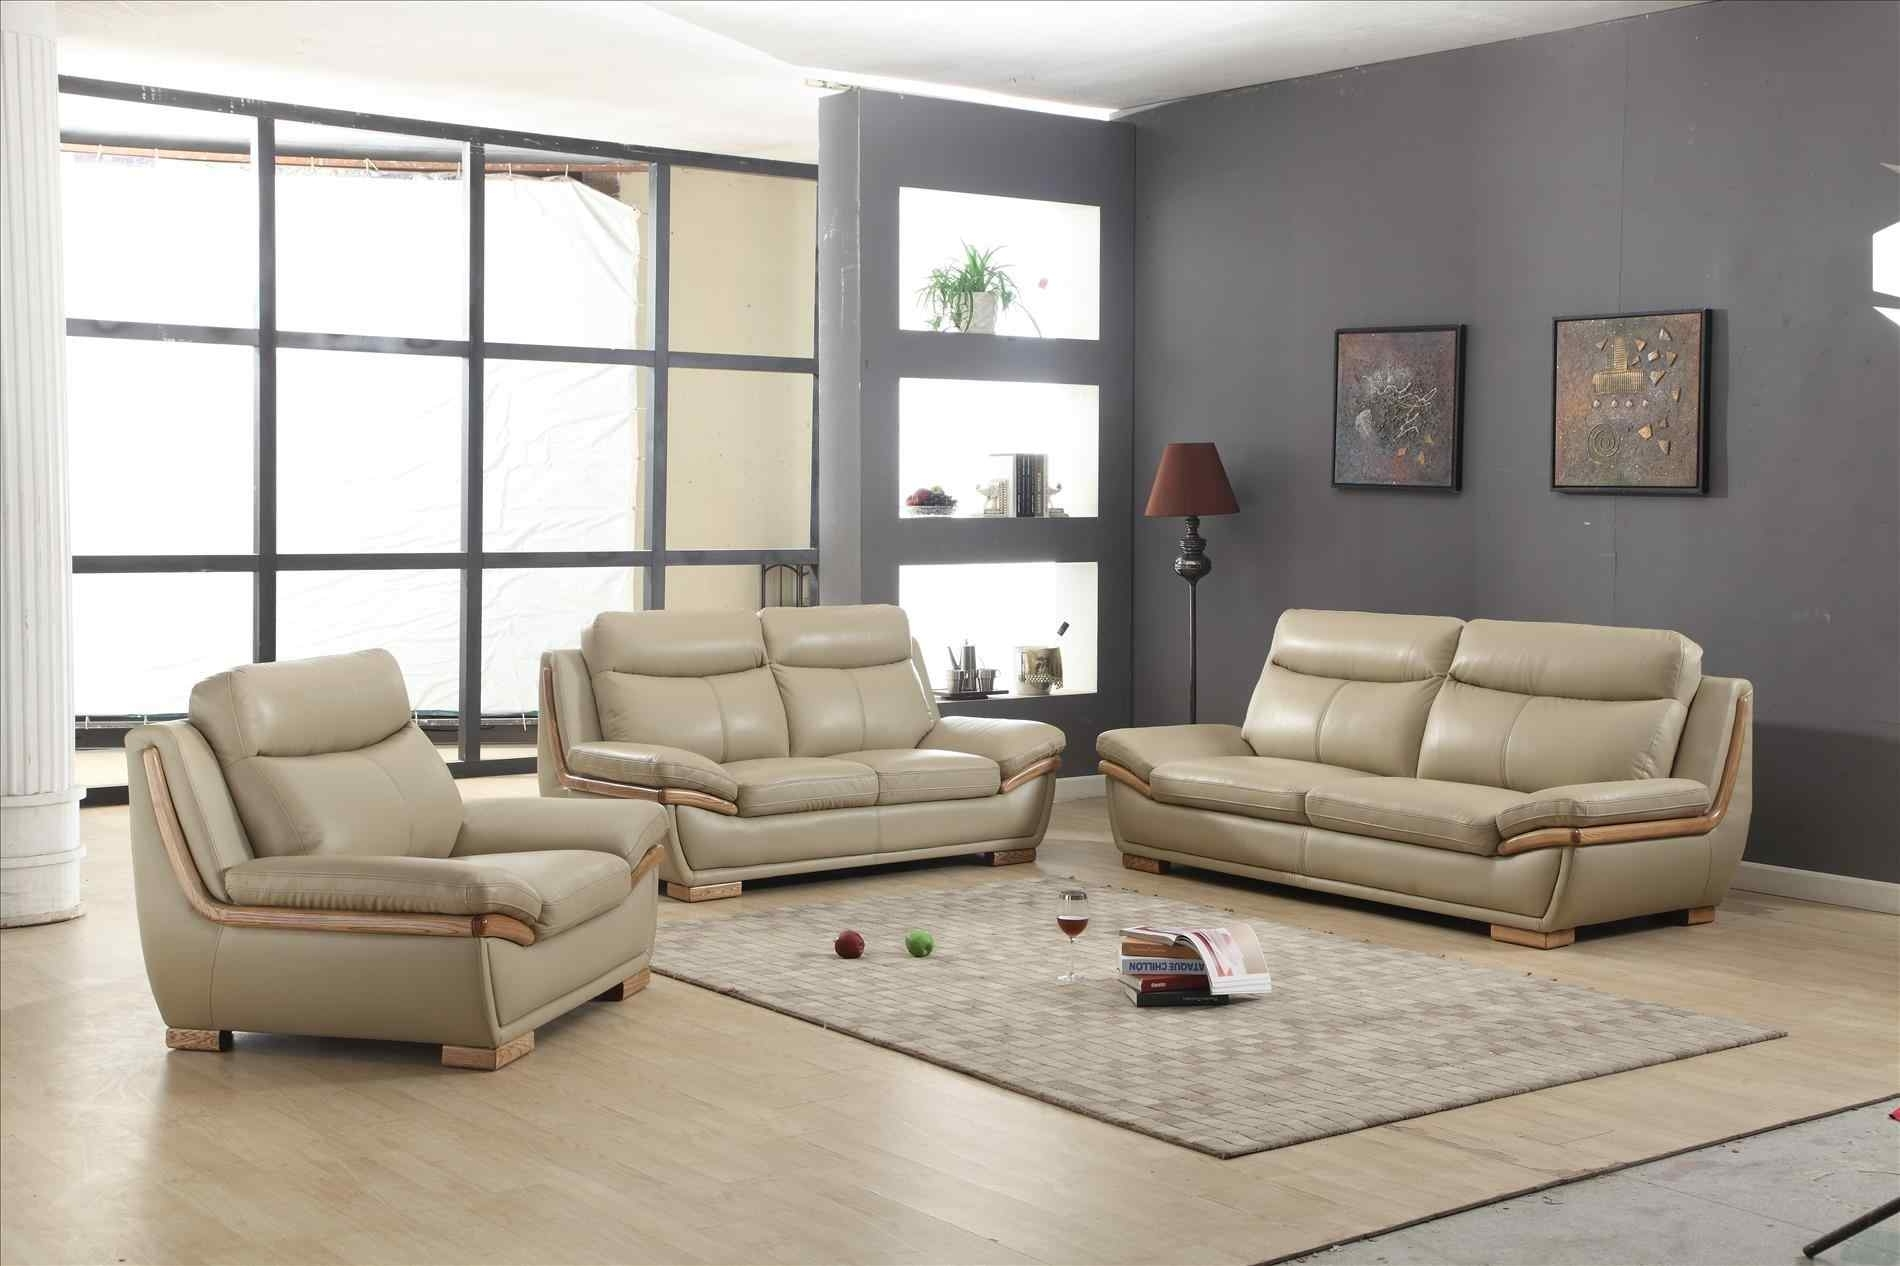 The Images Collection Of Couch Leather Modern Sectional Sofa Plus With San Francisco Sectional Sofas (Image 9 of 10)